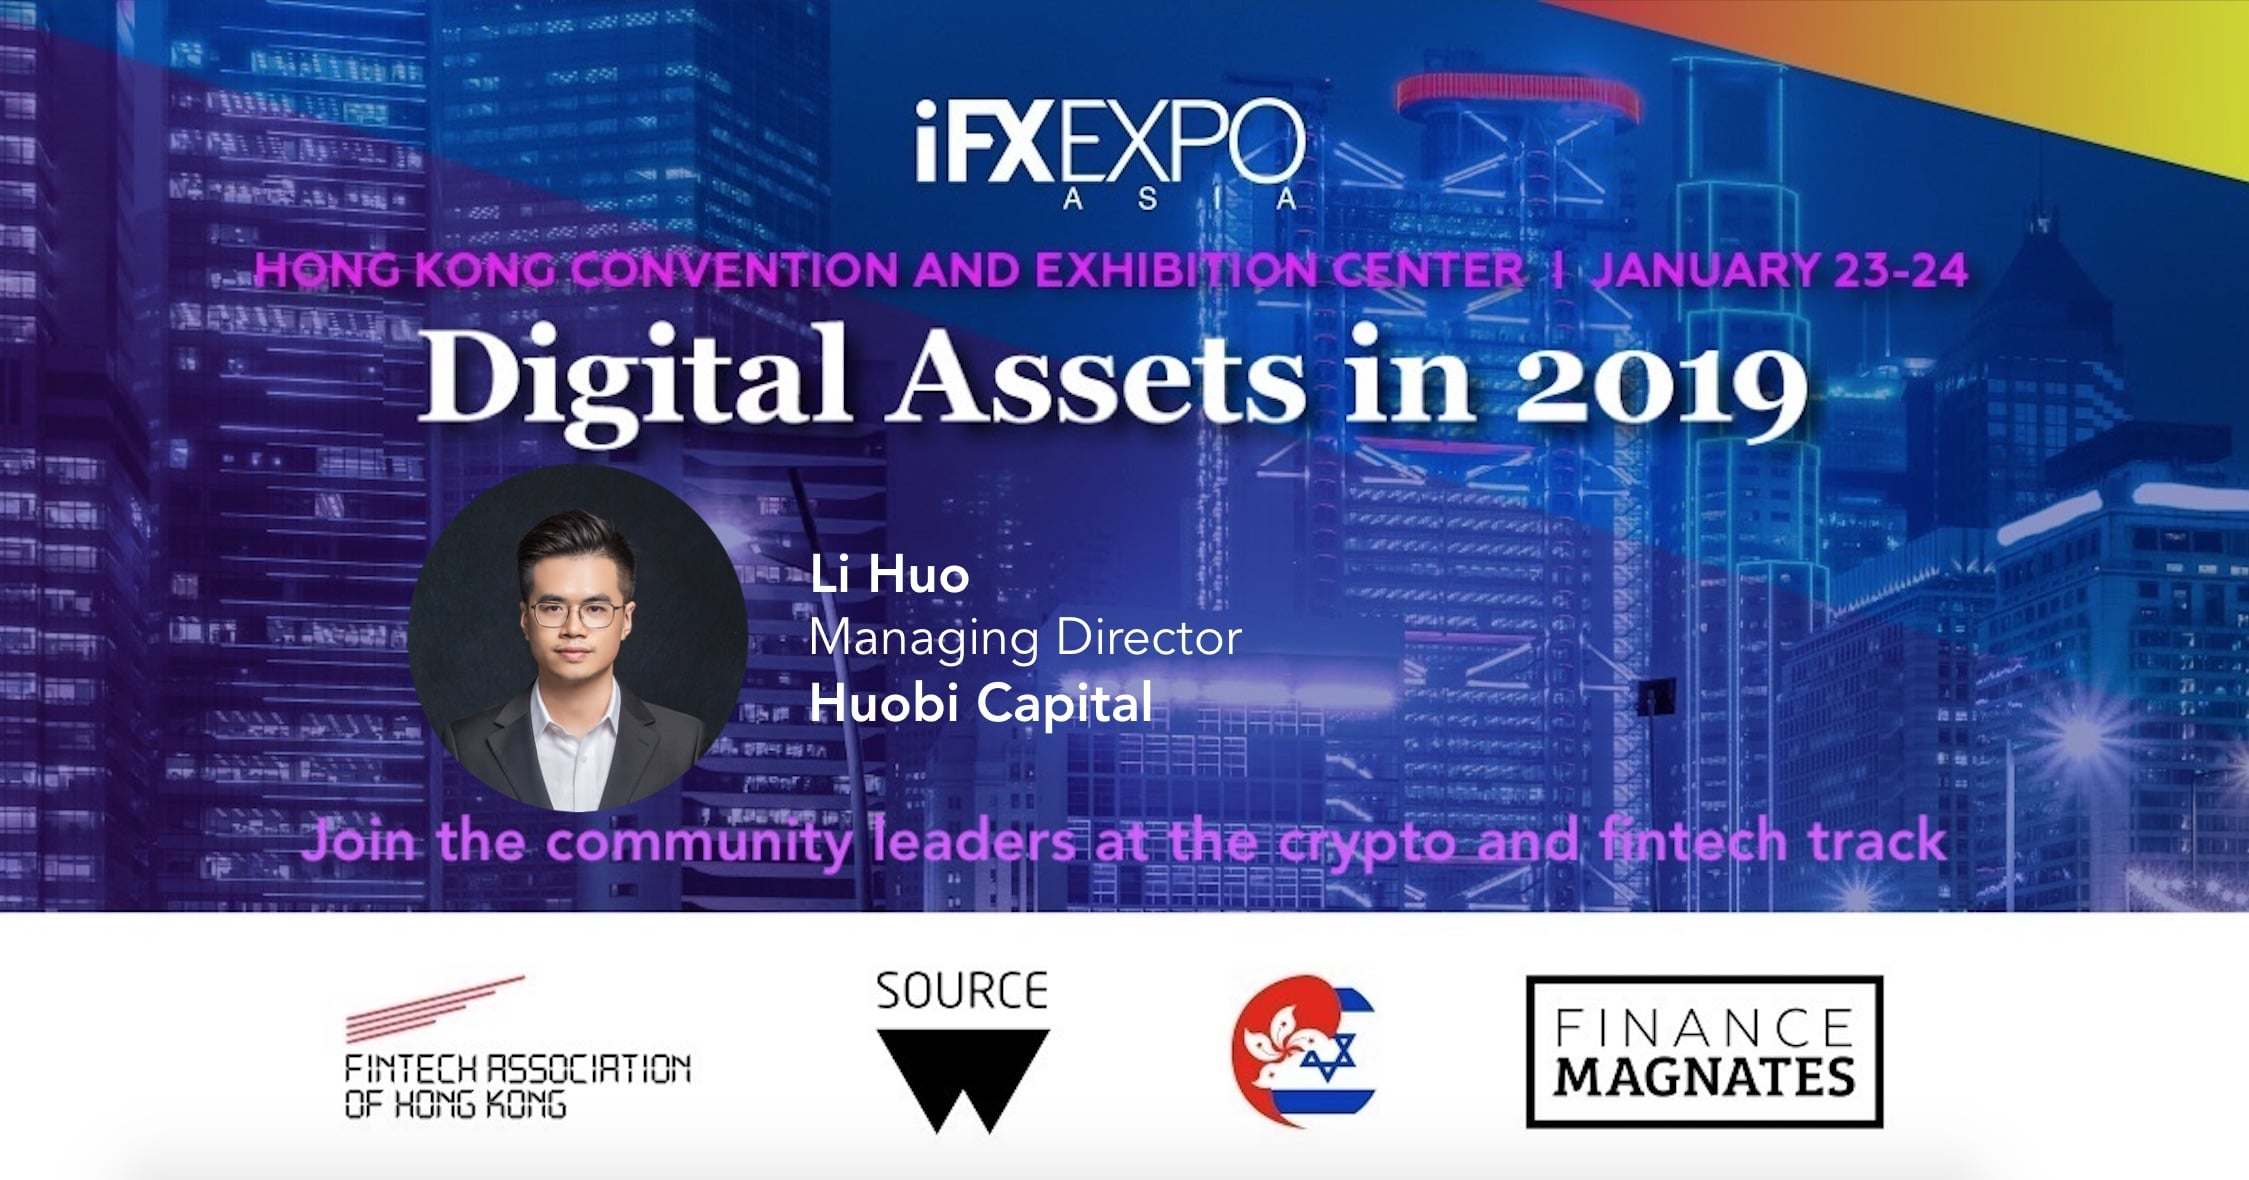 Li Huo, Huobi Capital, iFX EXPO